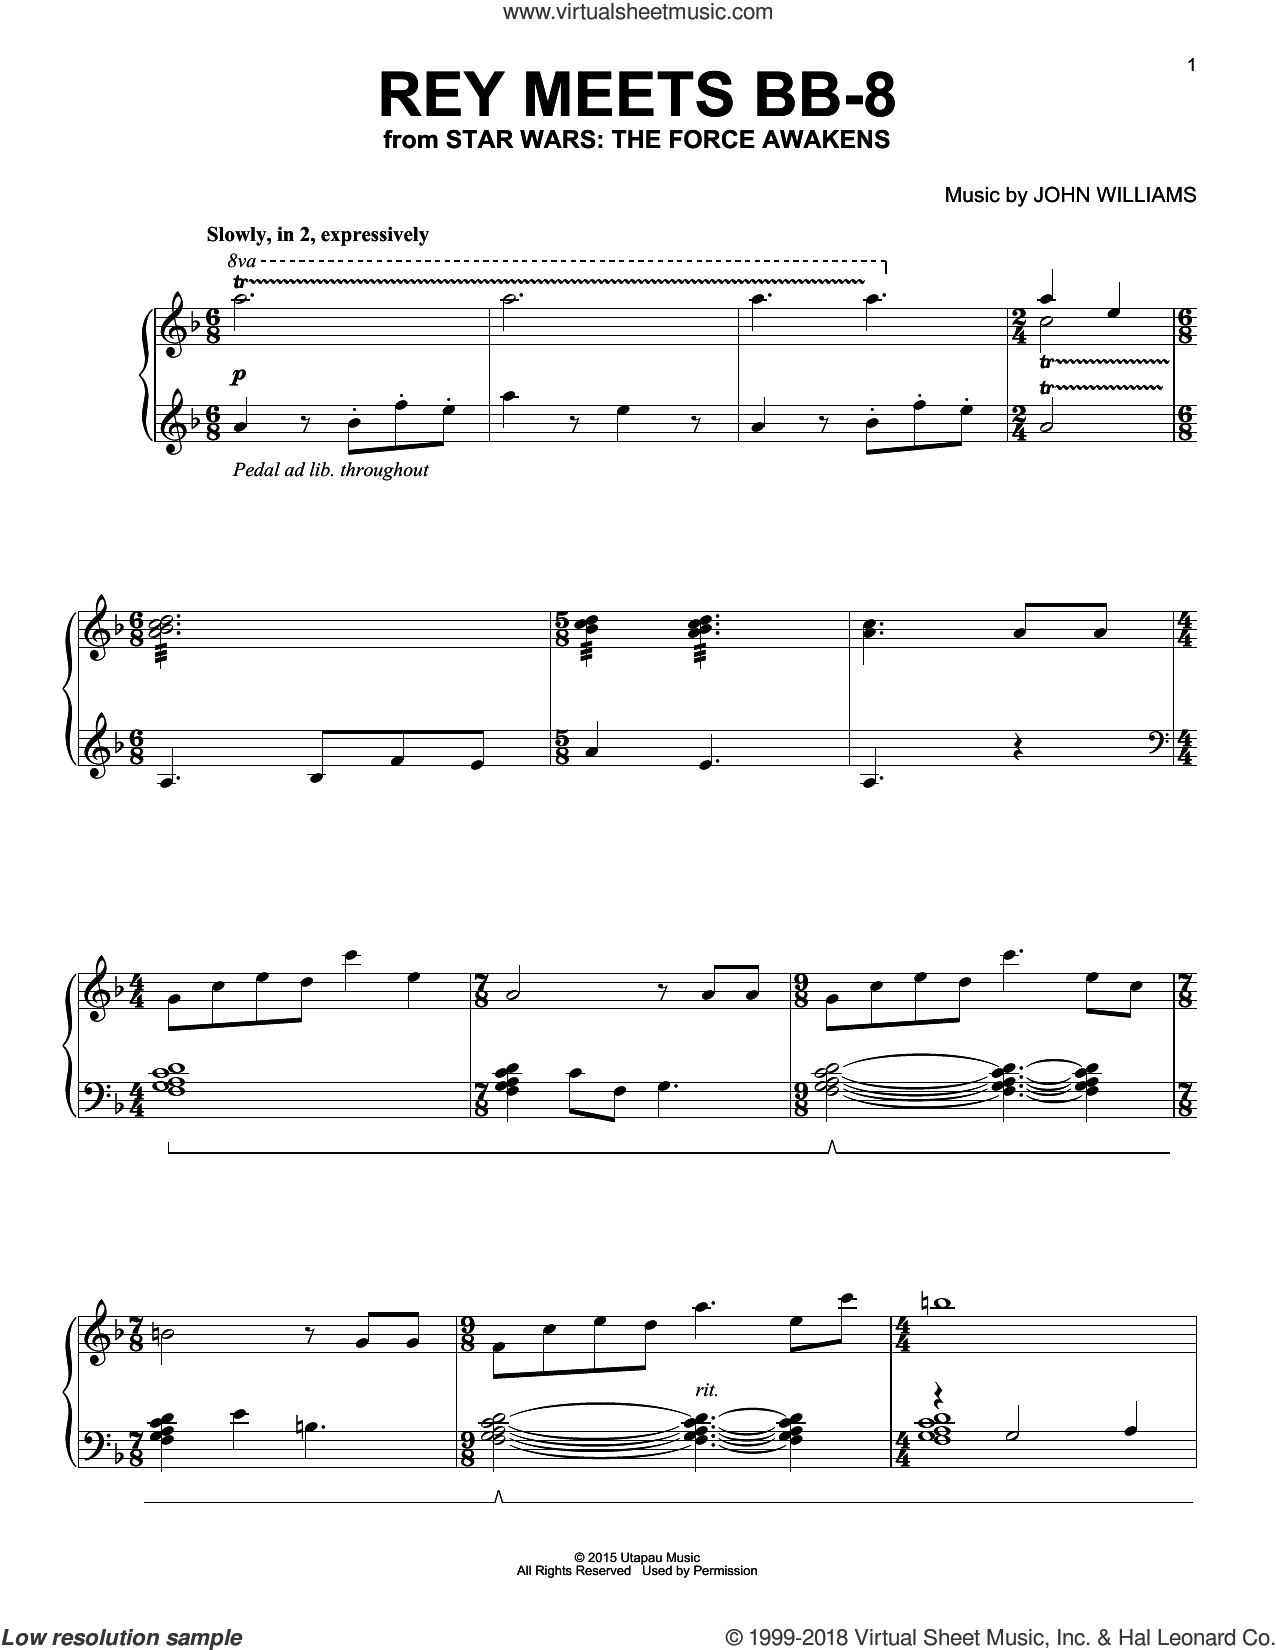 Rey Meets BB-8 sheet music for piano solo by John Williams. Score Image Preview.